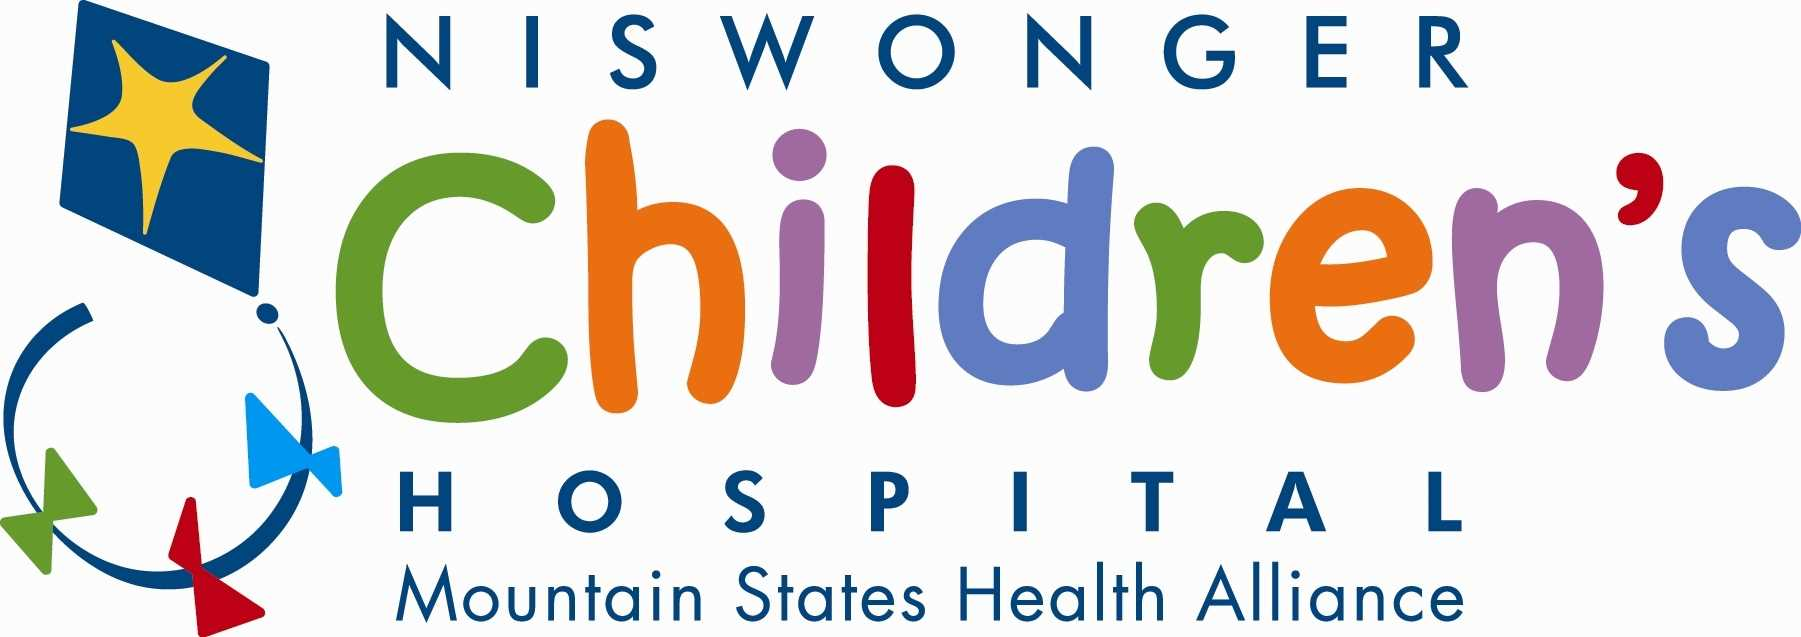 Niswonger Children's Hospital